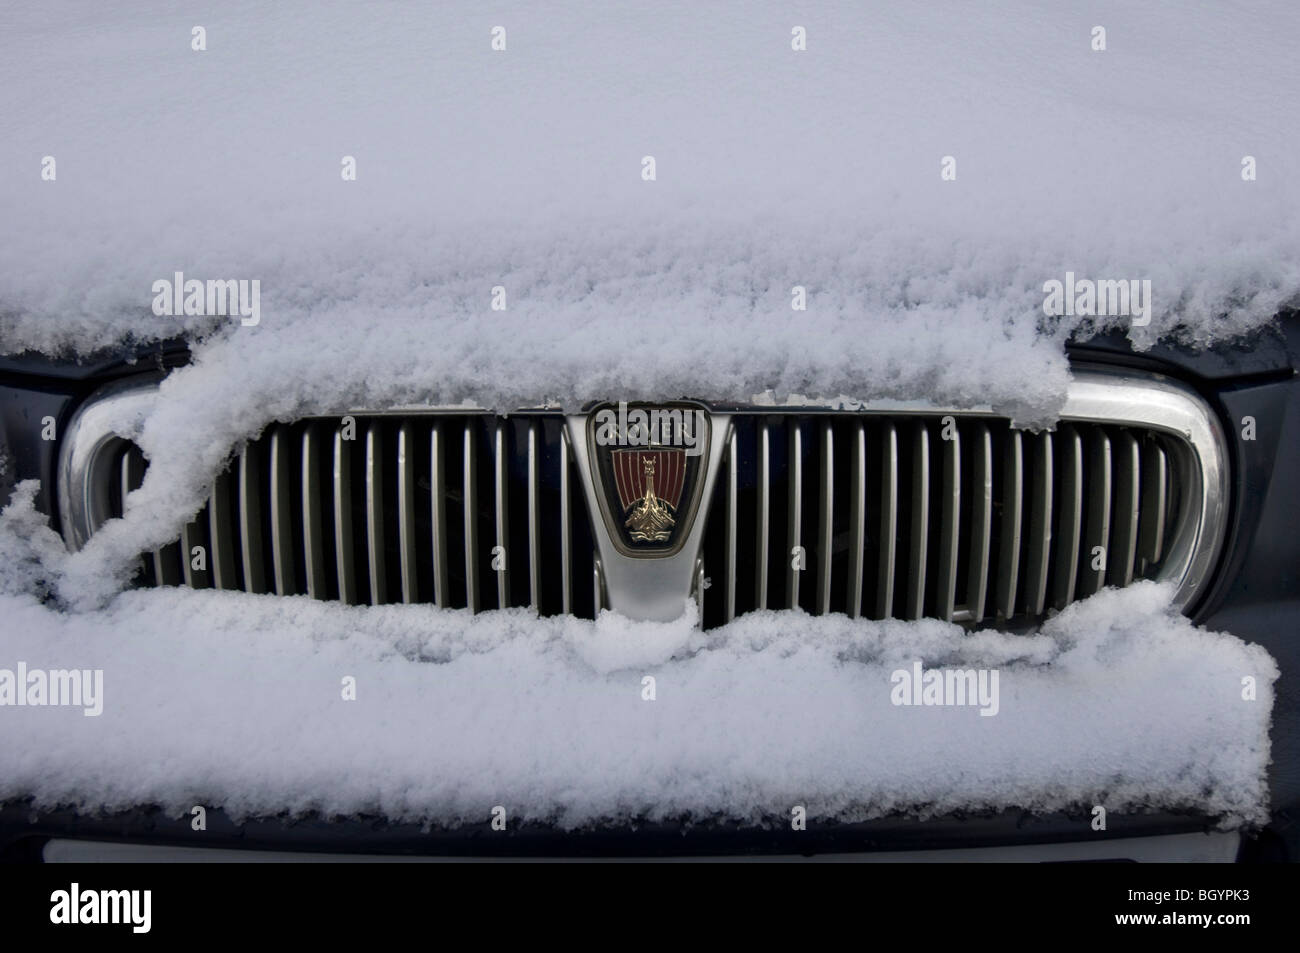 A Rover car in the snow, front view - Stock Image